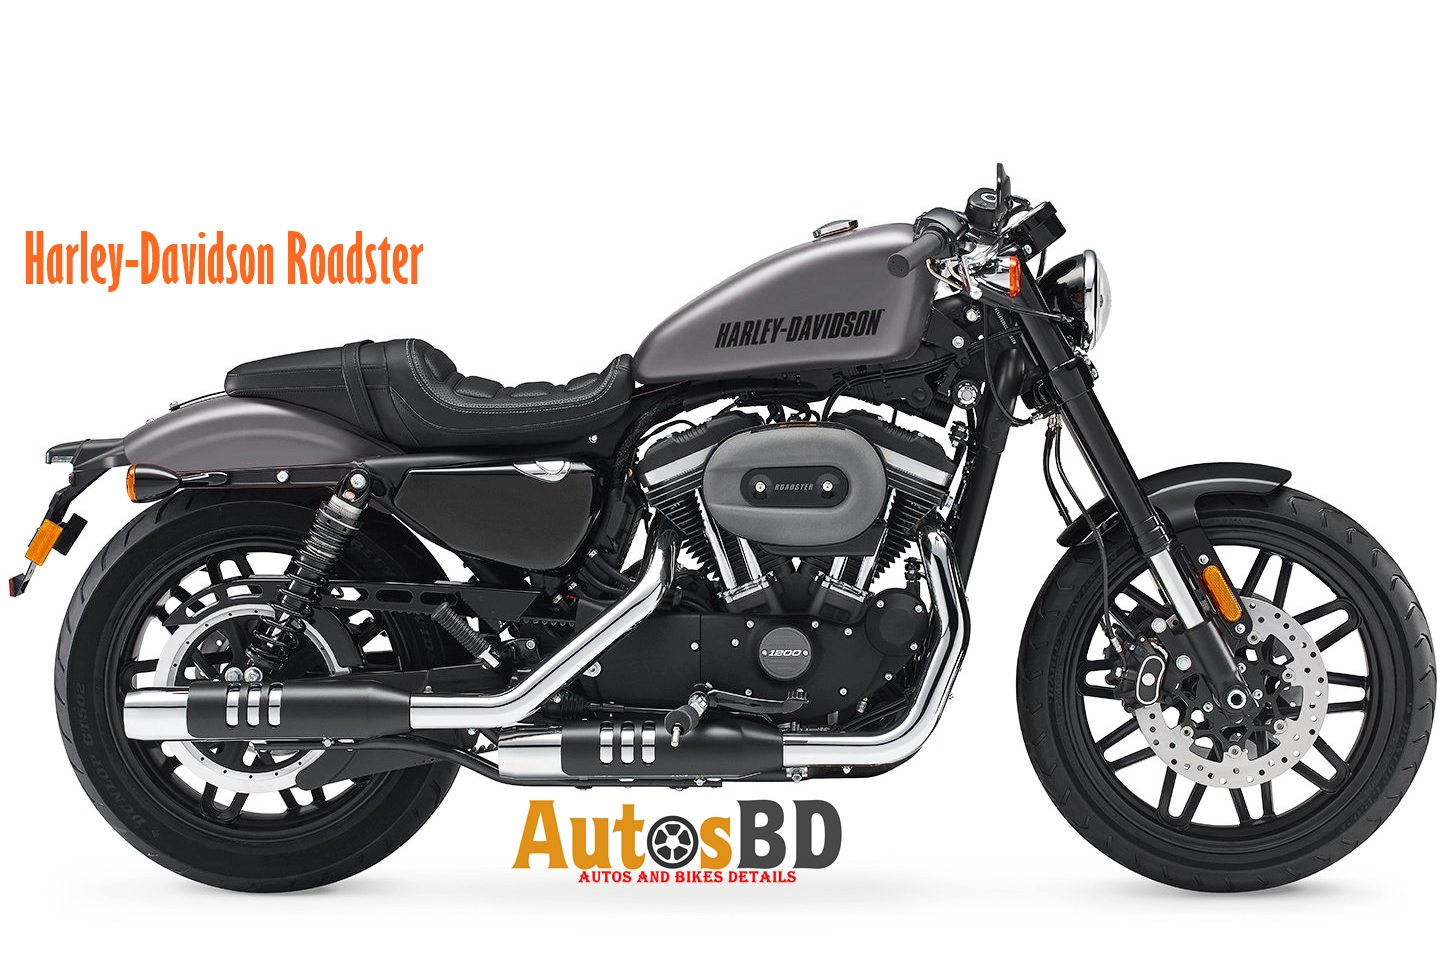 Harley-Davidson Roadster Specification